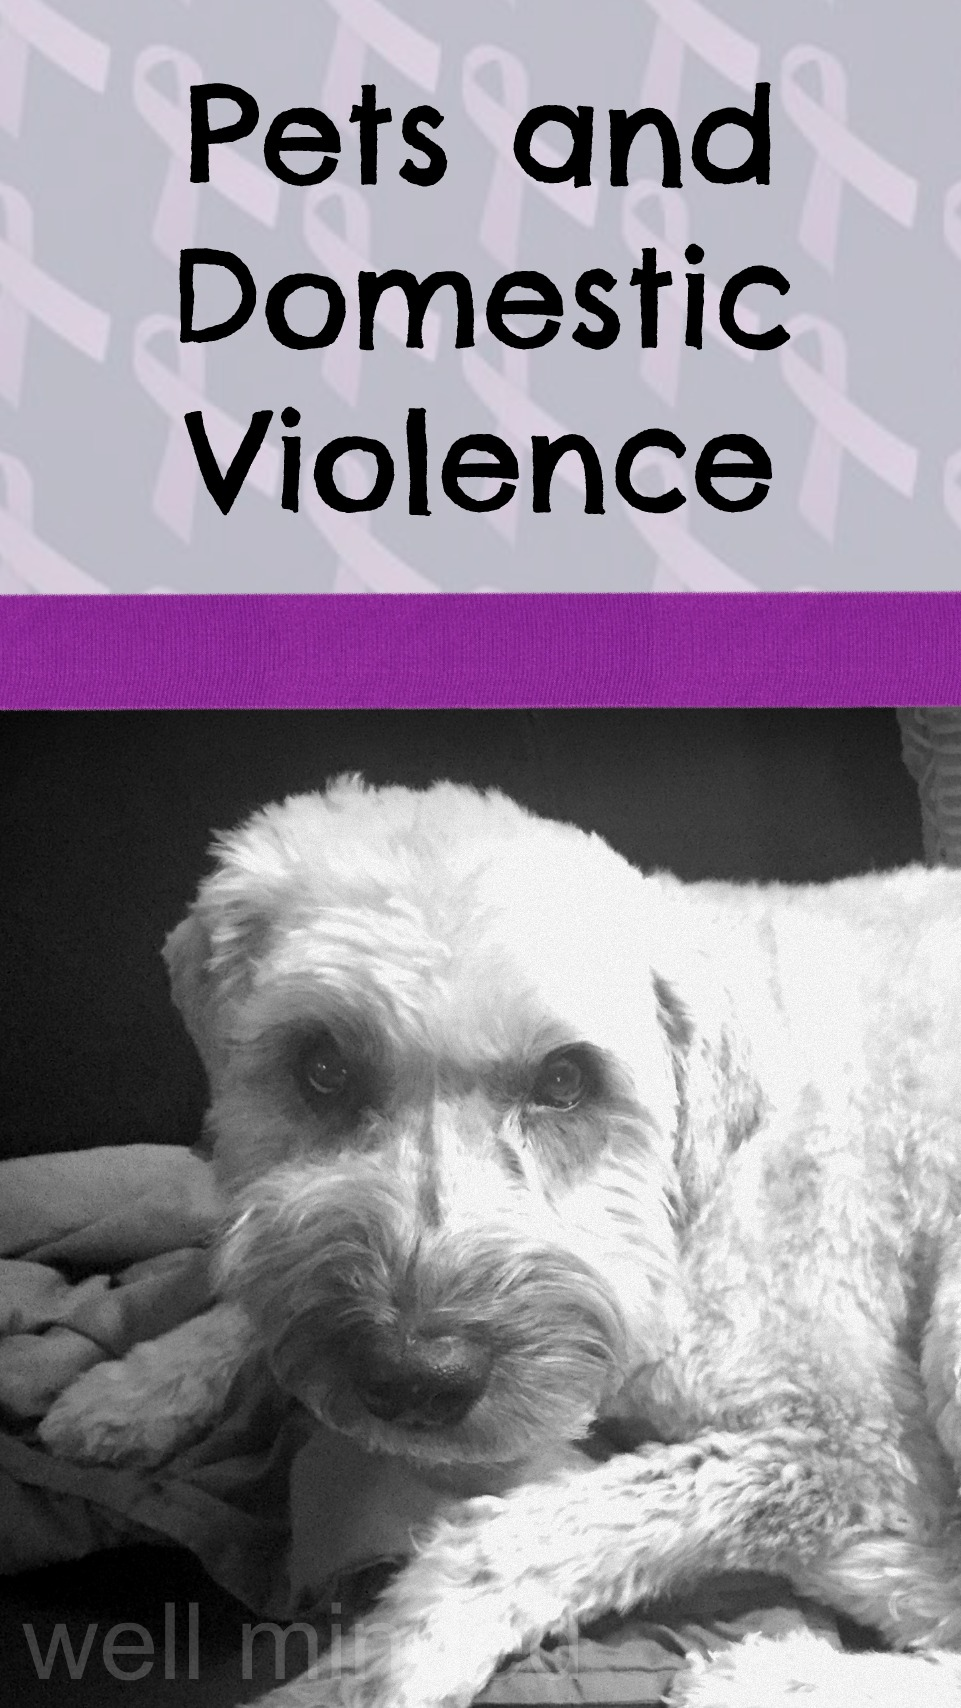 Pets and Domestic Violence